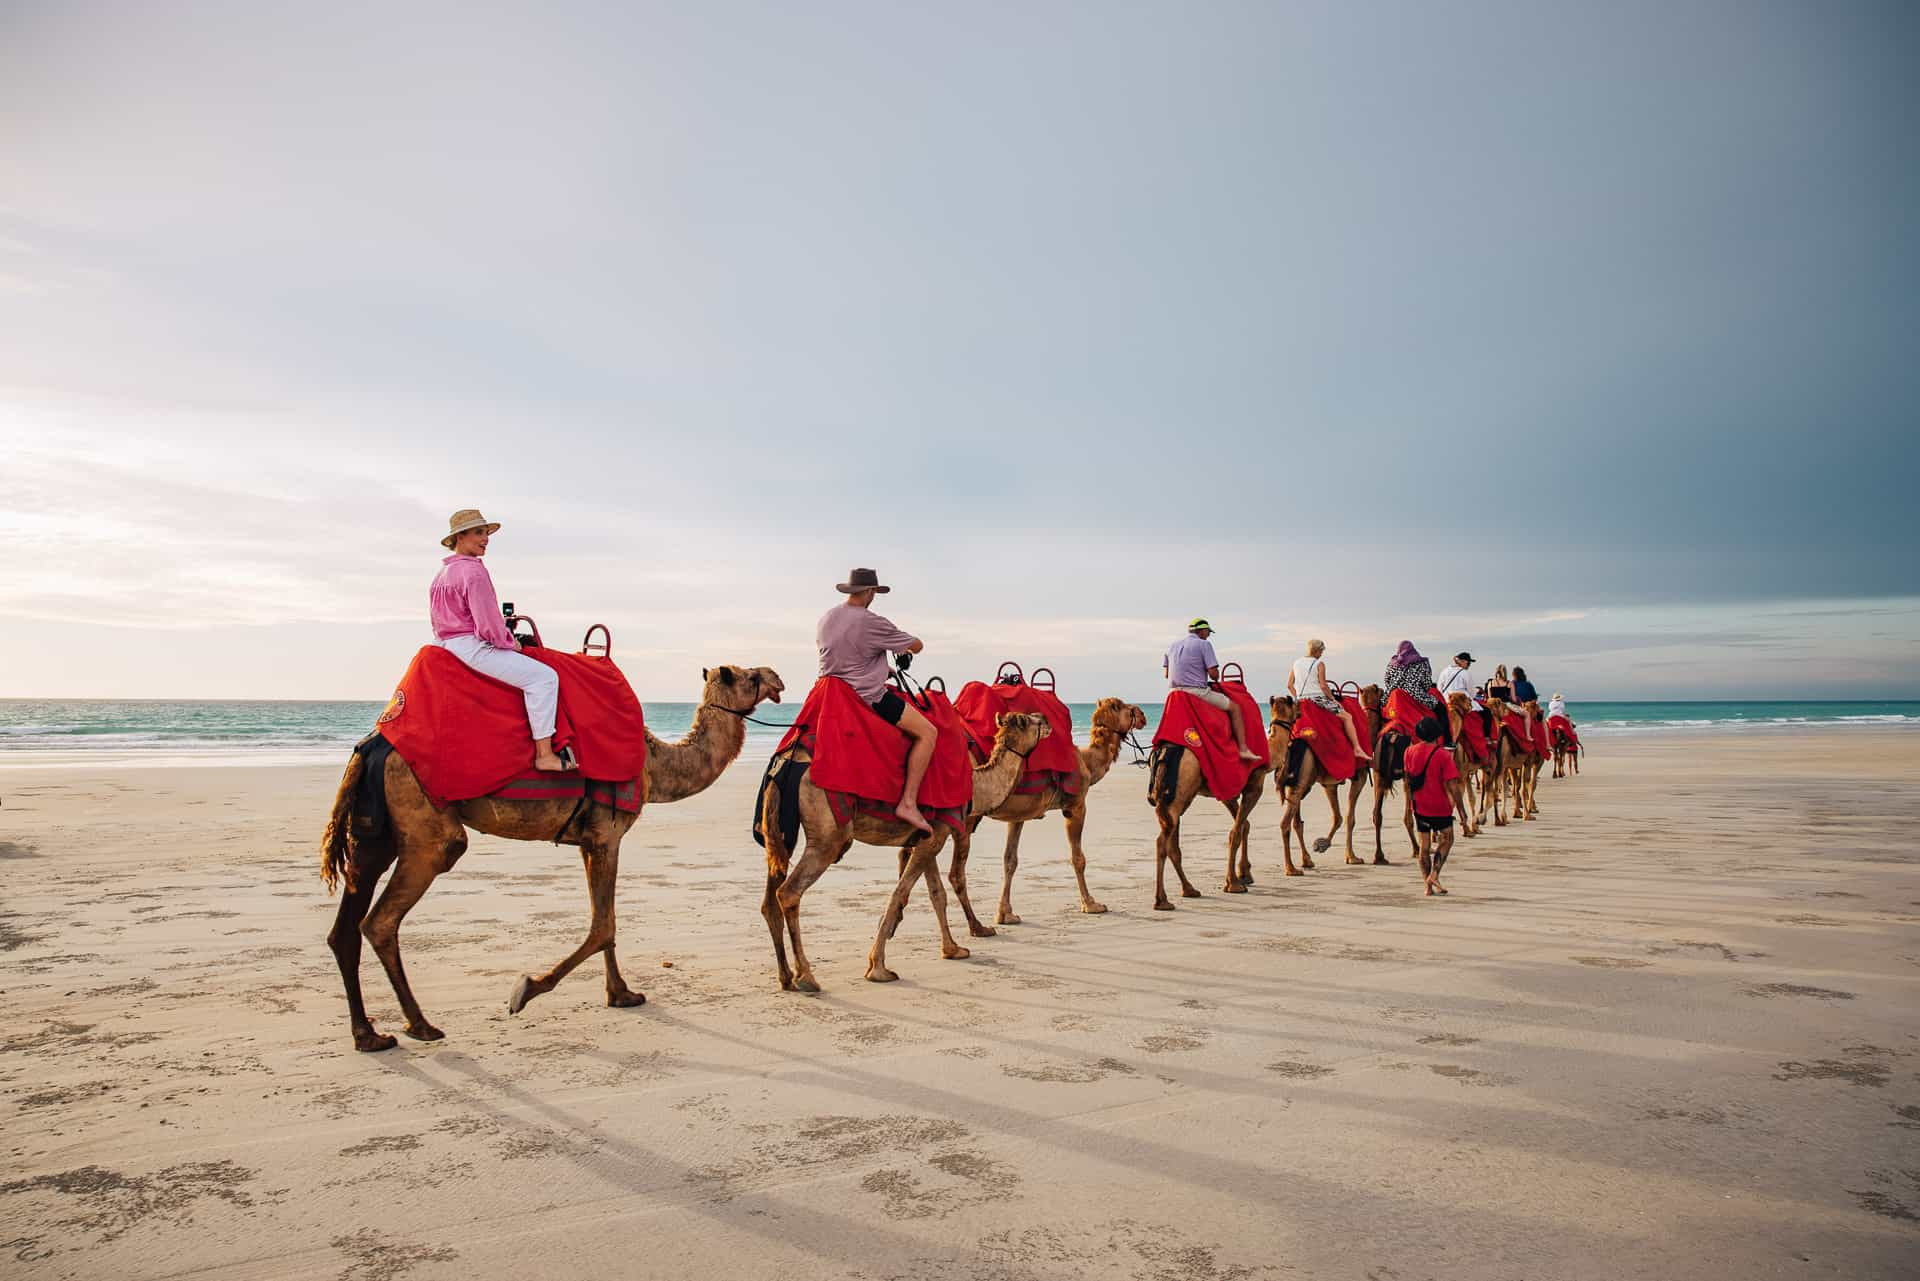 broome, broome wa, things to do in broome, broome things to do, cable beach, cable beach camels